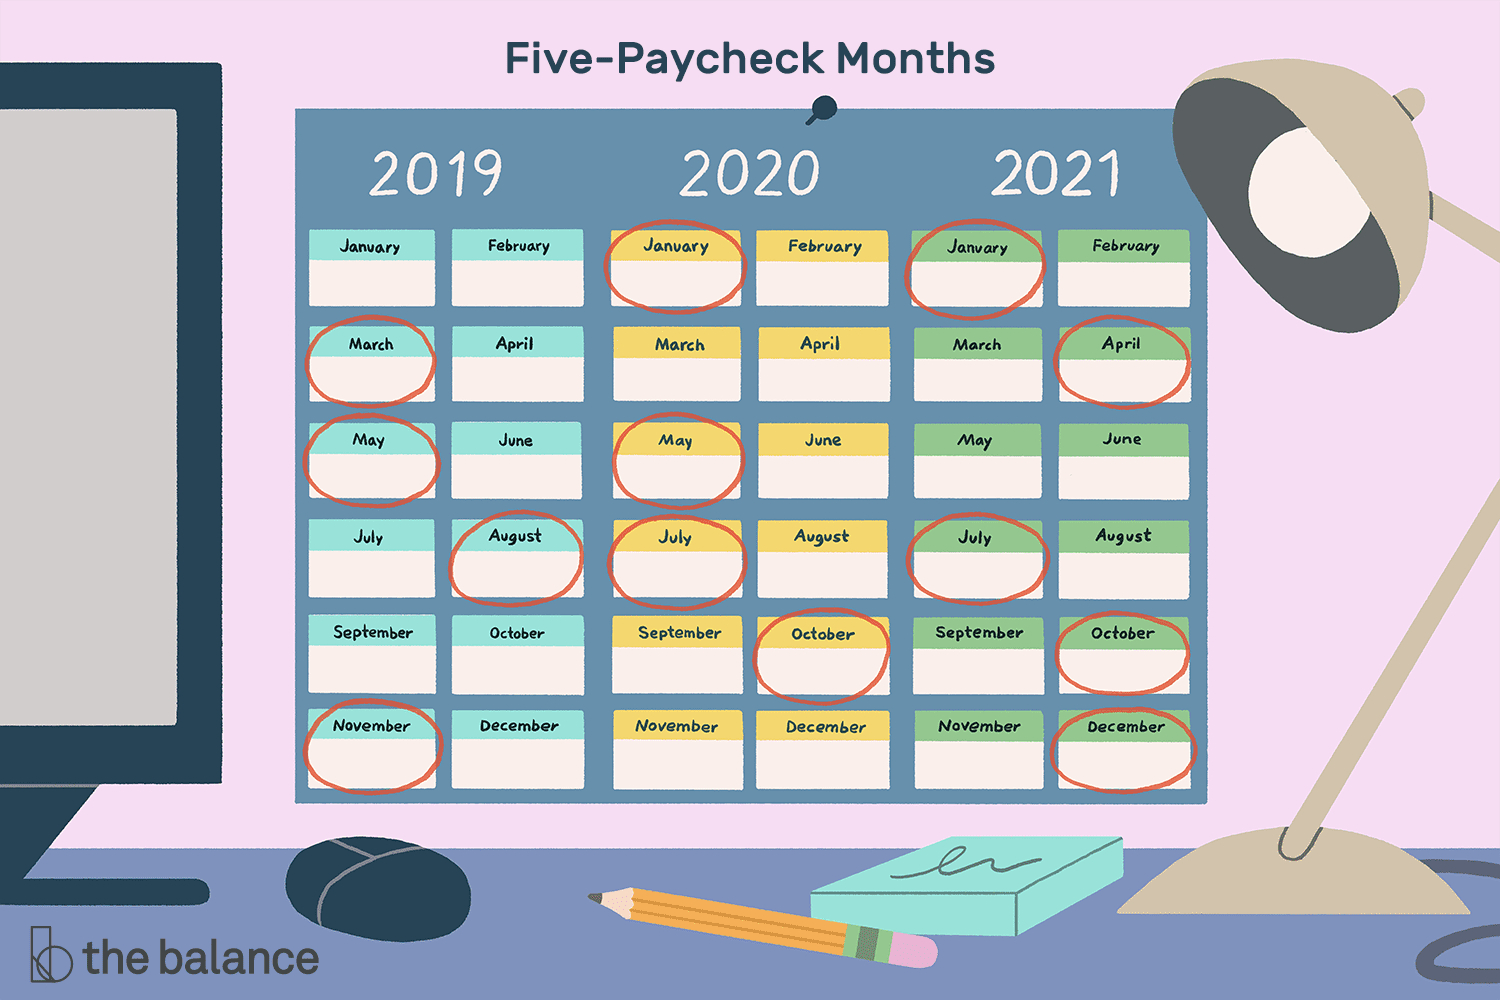 Months In Which You Receive 5 Paychecks From 2019-2029